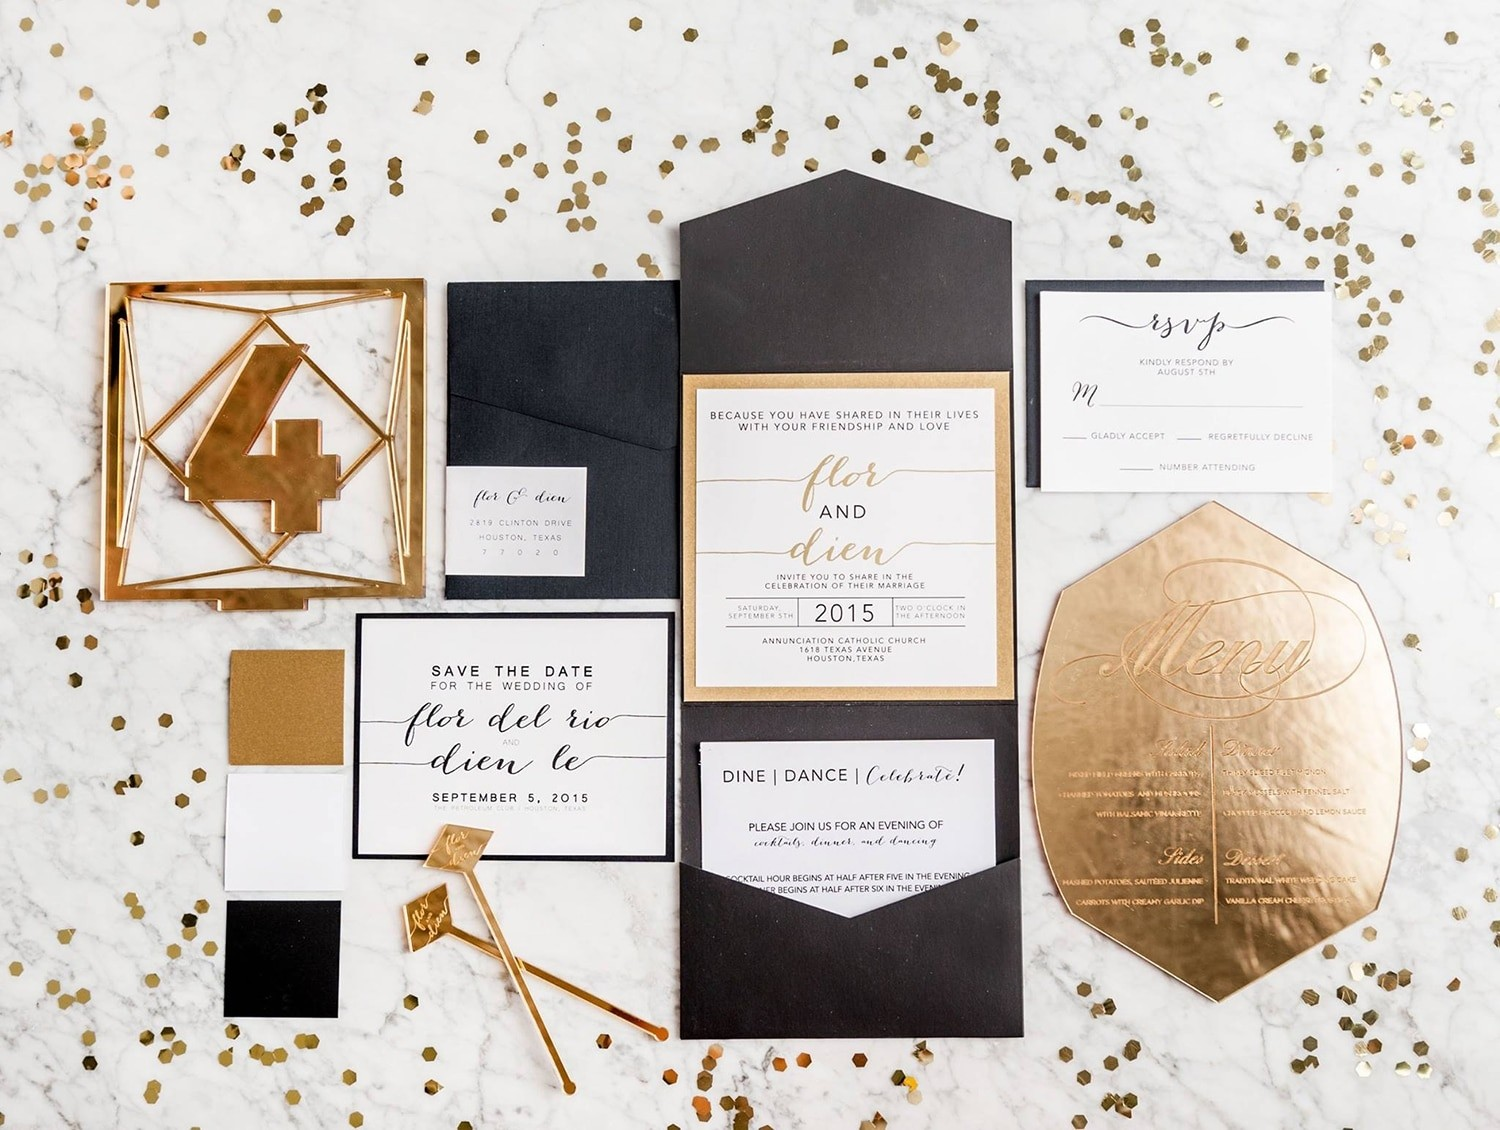 Wedding Invitation suite designed by My Urban Invites in Houston Texas